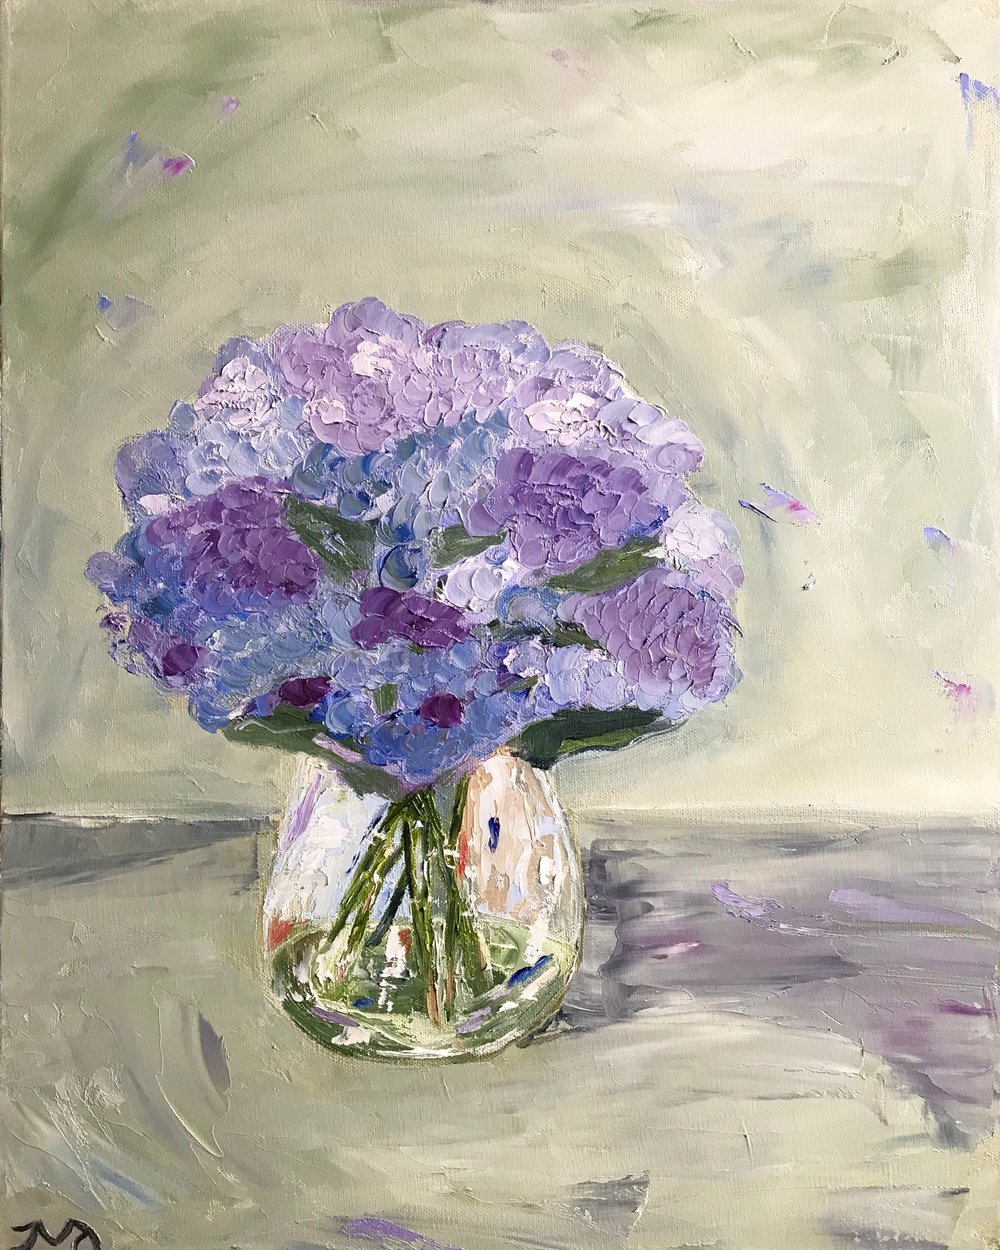 Hydrangeas   oil on canvas   16 x 20 x 1.5 inches   Available in store